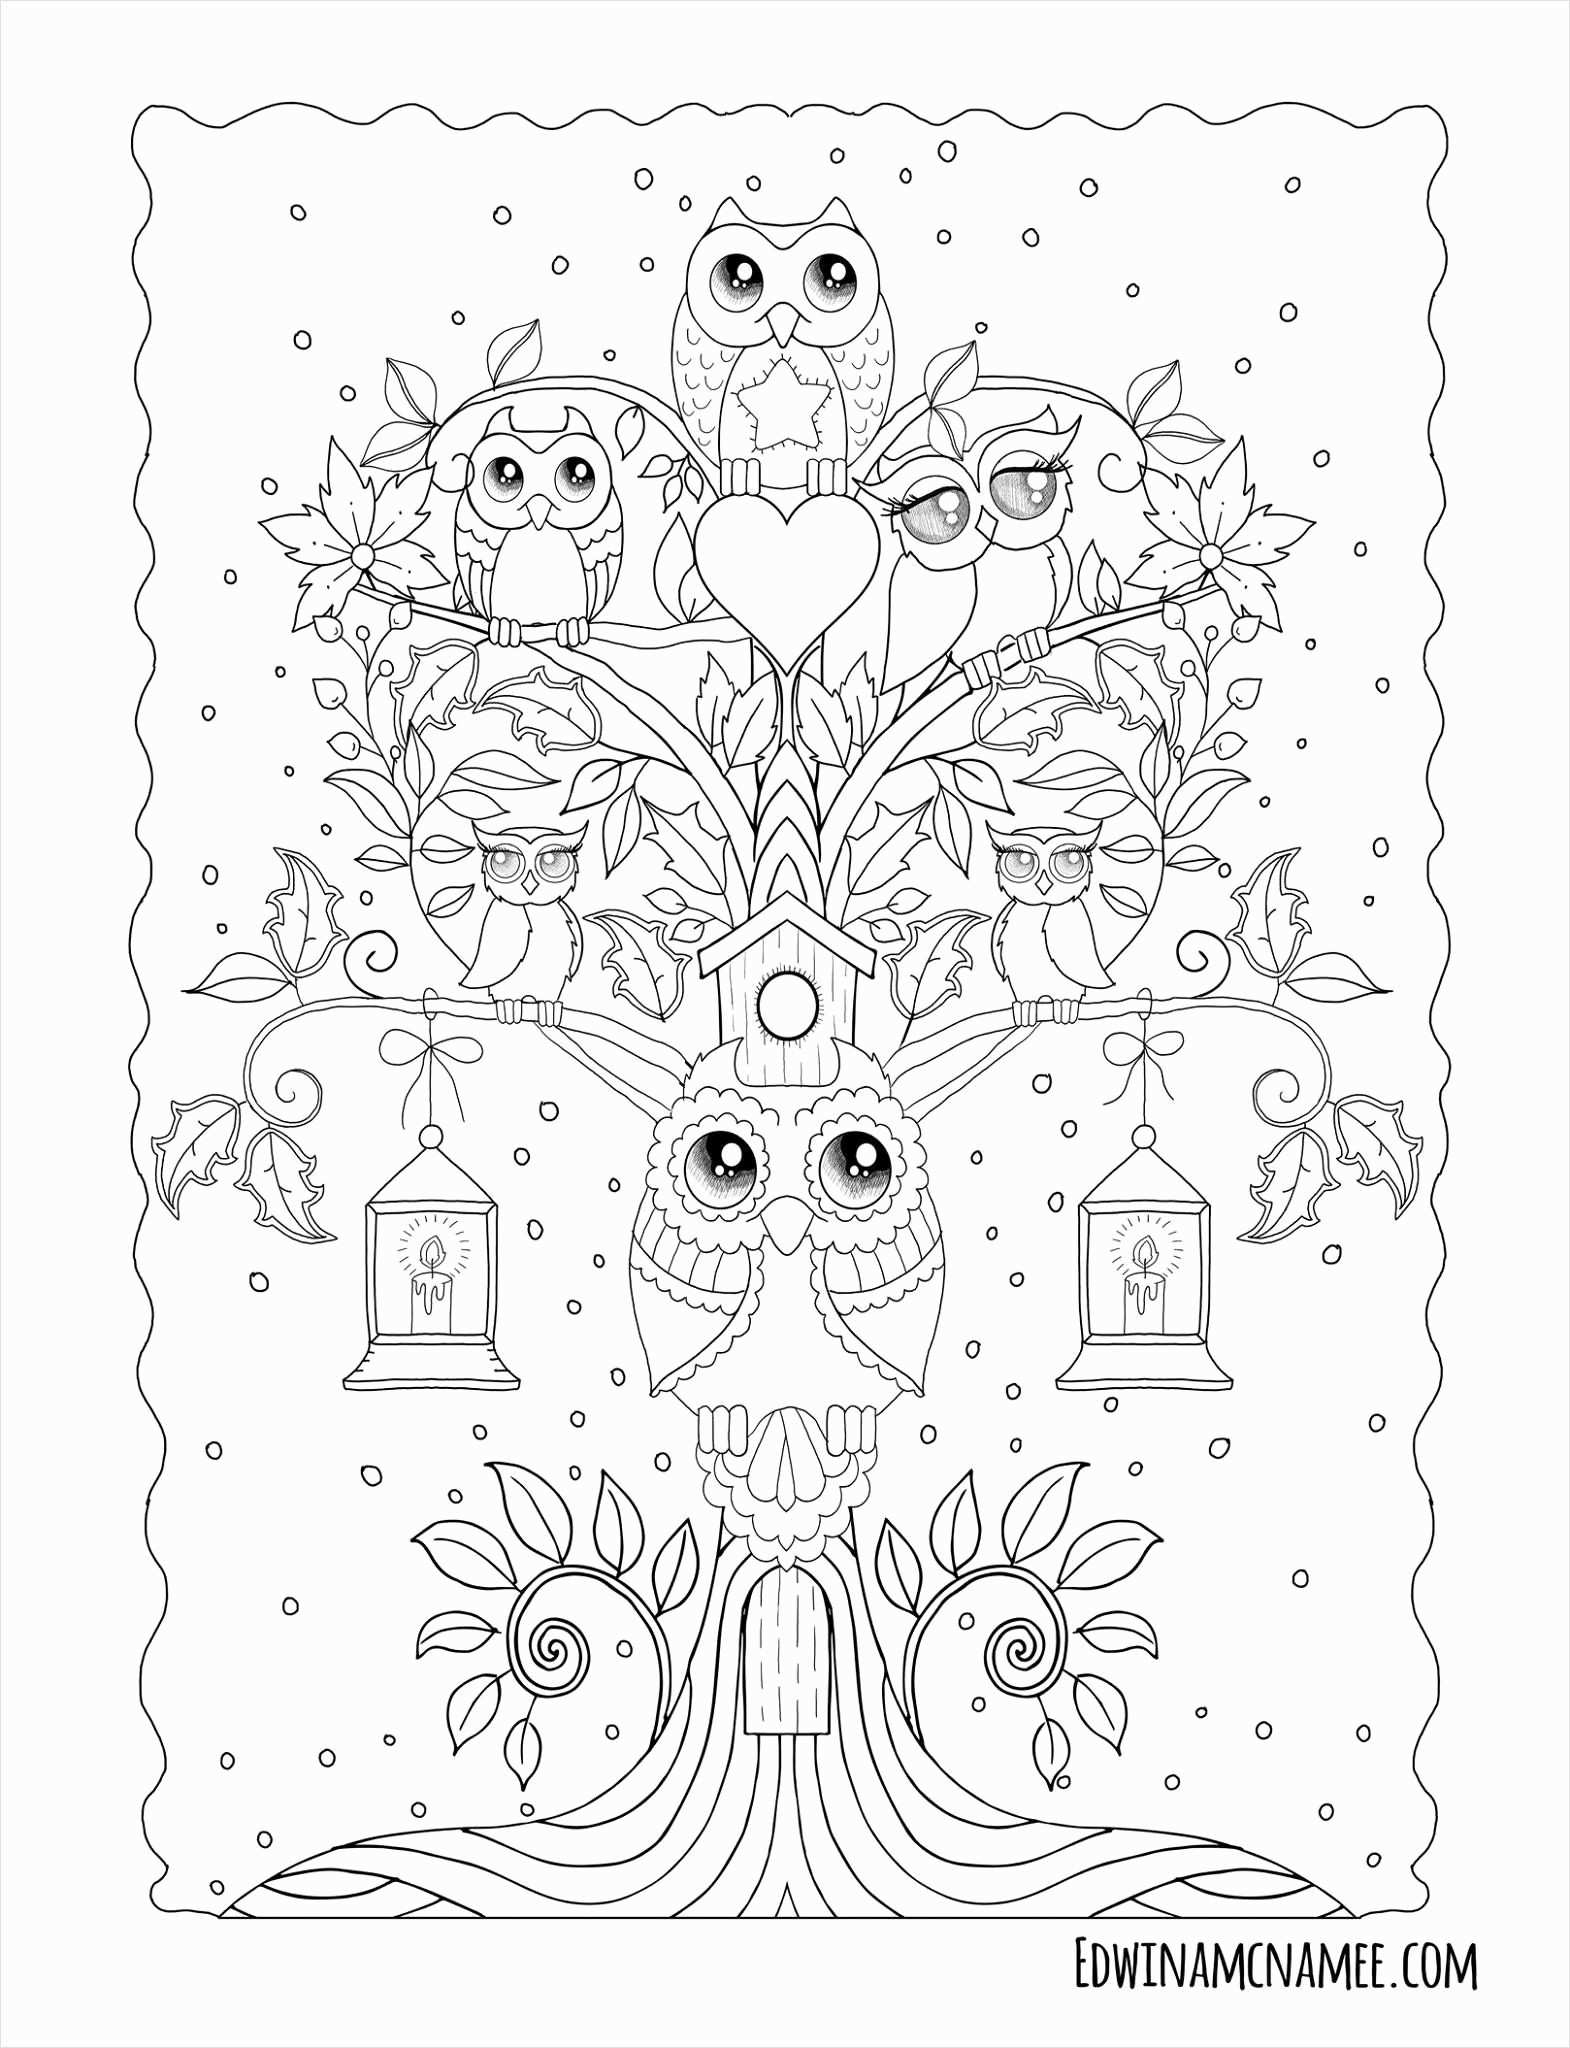 19 Self Control Coloring Pages Download